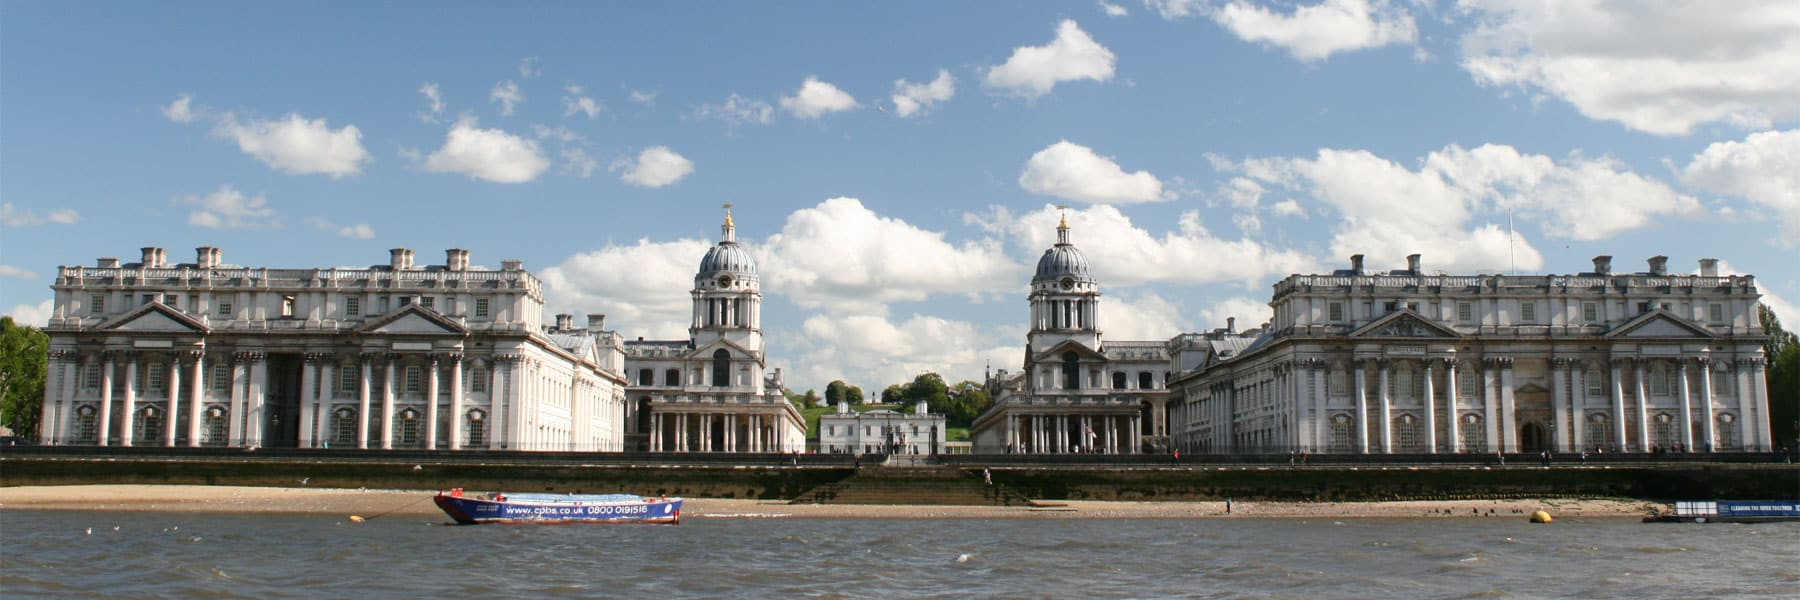 The Old Royal Naval College in the Royal Borough of Greenwich